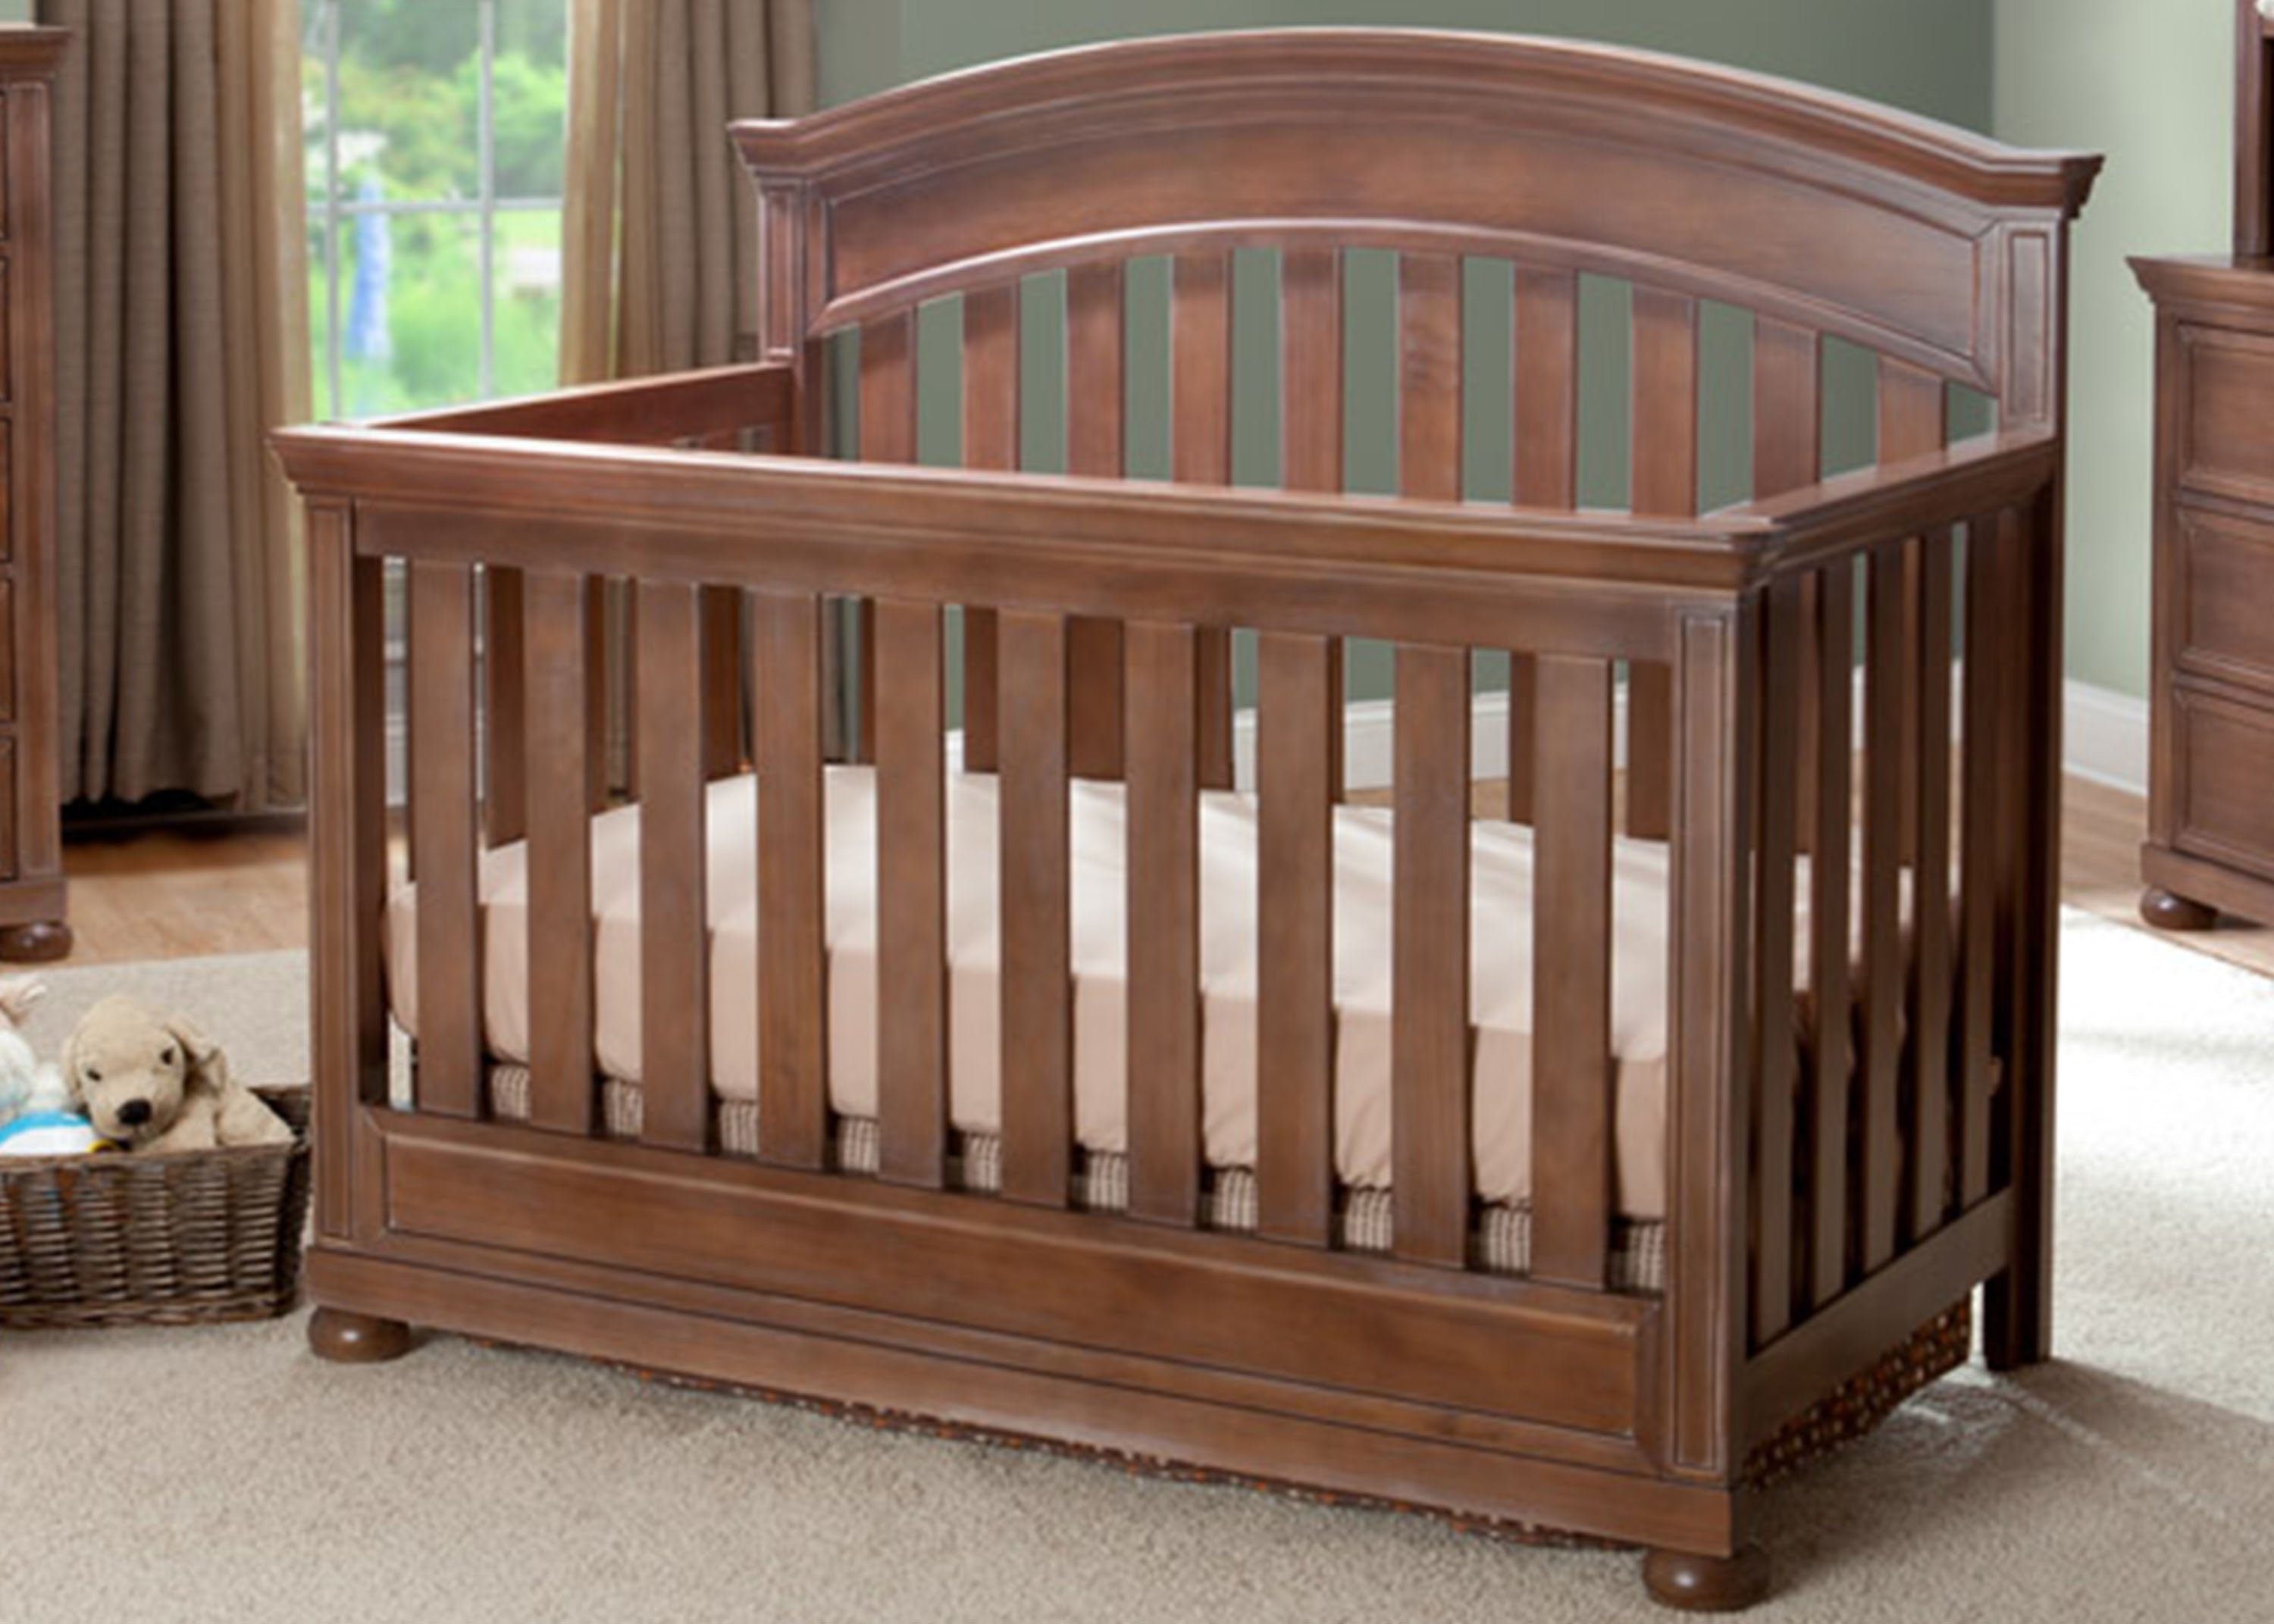 simmons nursery furniture. Simmons Kids Antique Walnut (267) Chateau Crib \u0027N\u0027 More, Room Shot Nursery Furniture 1